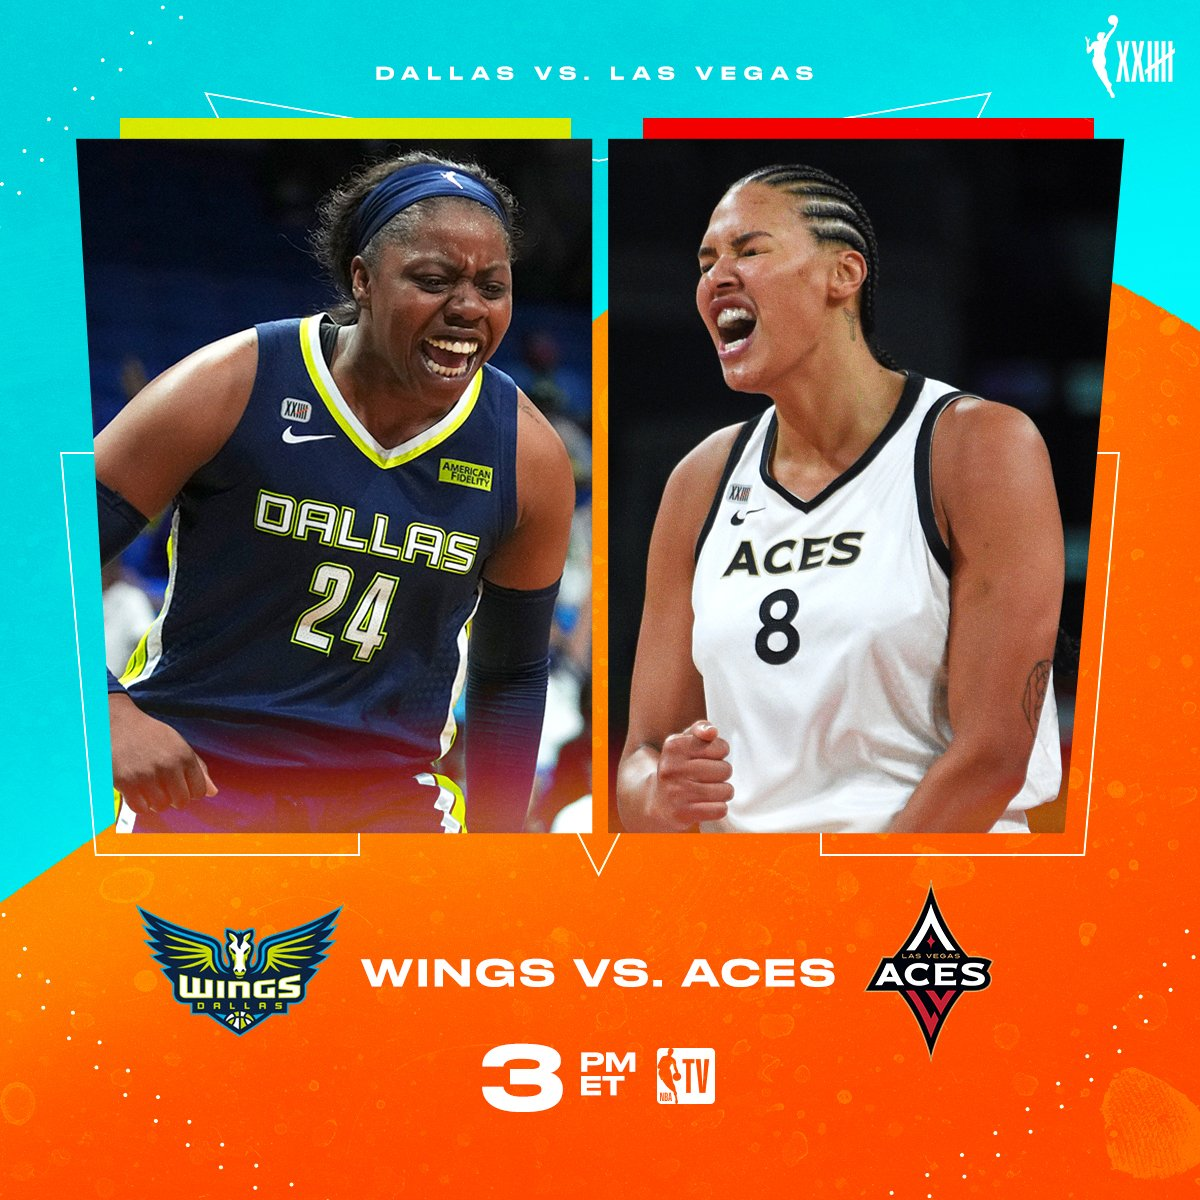 The @LVAces look to clinch a double-bye 🏀🔥 📺 Wings vs. Aces // 3pm ET on NBA TV!